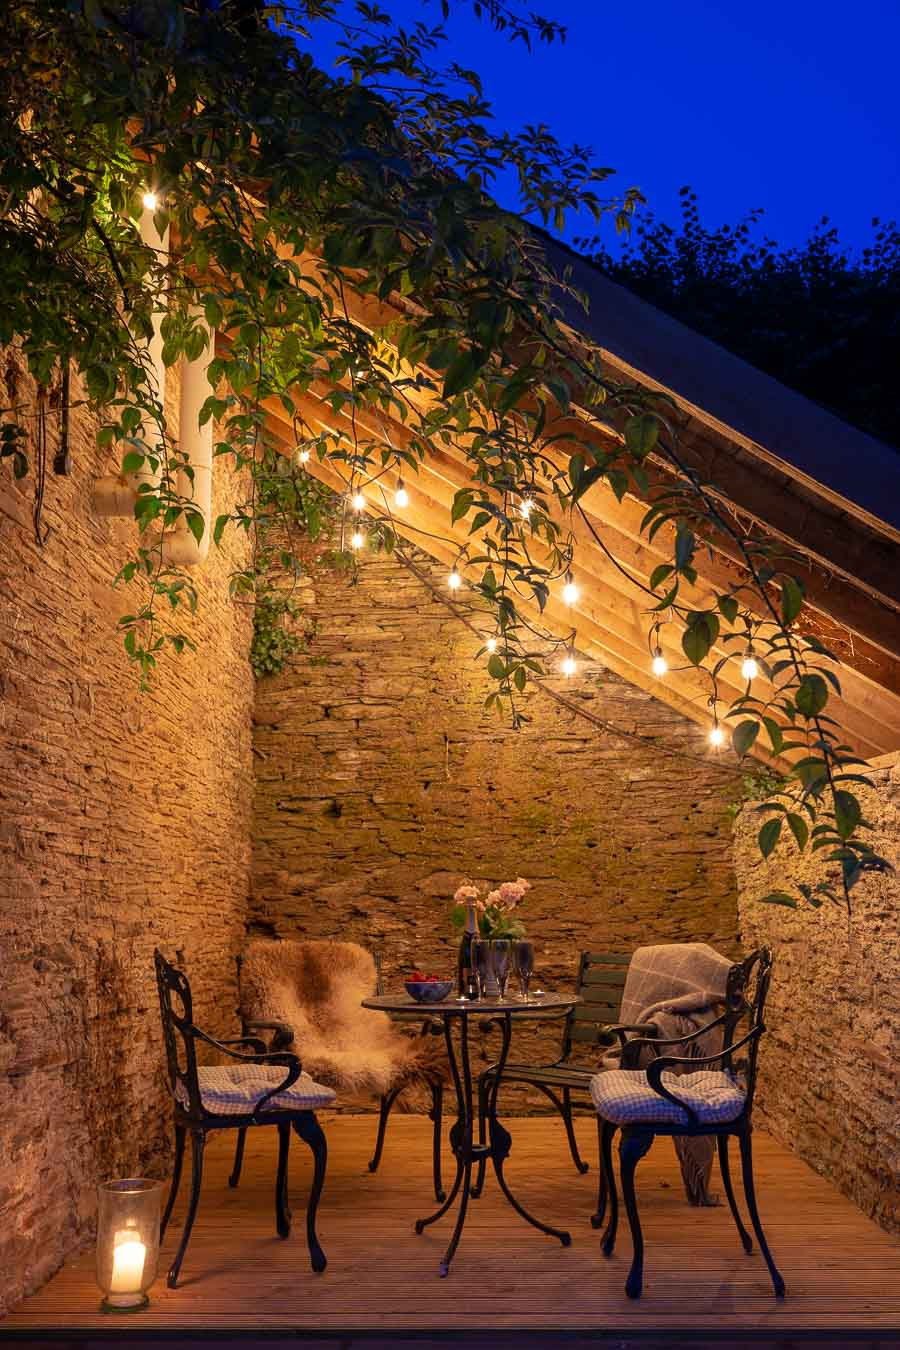 The lean too of the Linhay cottage at Flear Farm with iron furniture and festoon lights.